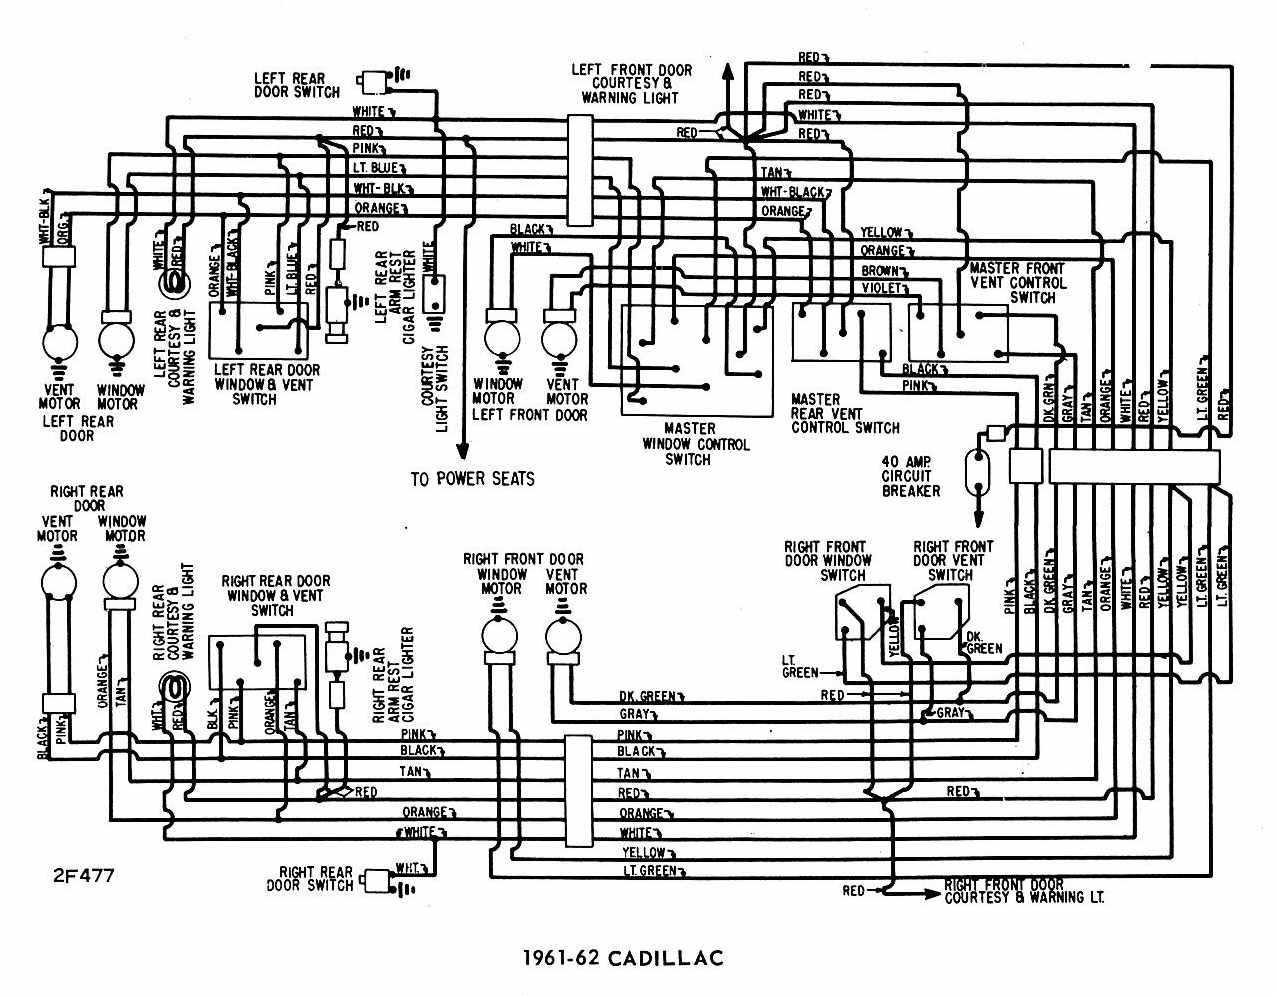 1963 cadillac deville wire diagram schematic diagram www rgr1963 cadillac spark plug wire diagram wiring diagram 1955 cadillac deville 2003 deville headlight socket wiring